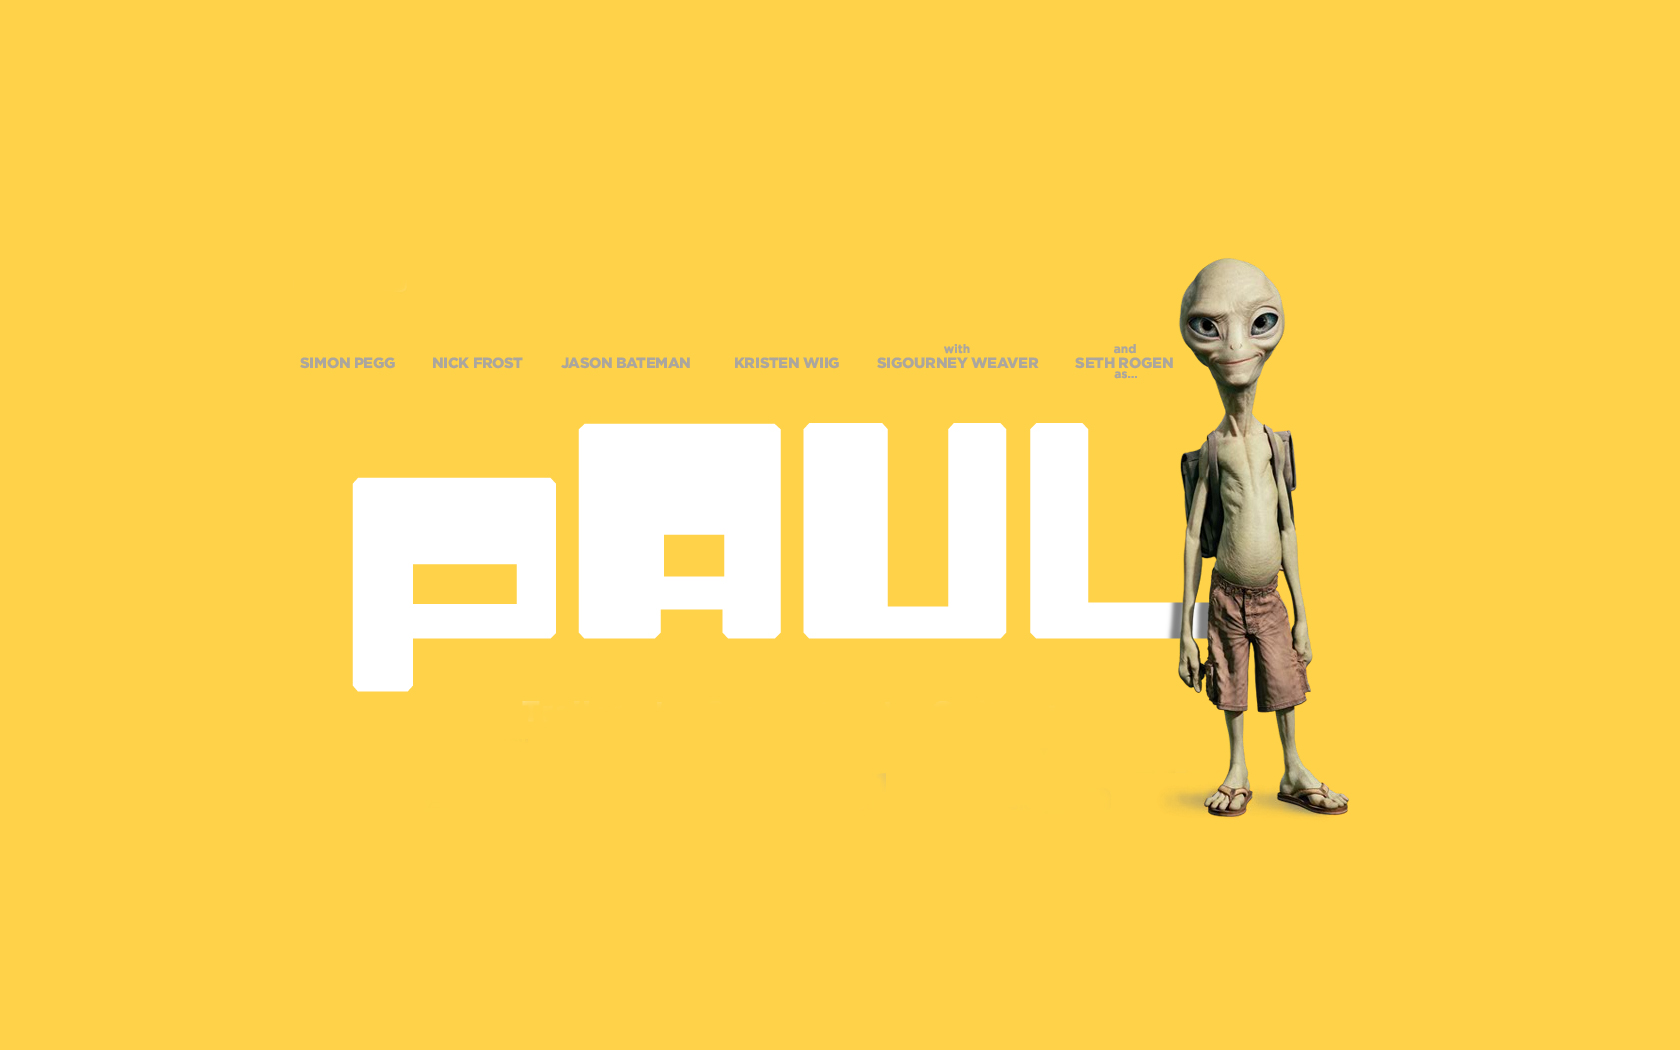 Paul Wallpaper 1680x1050 1680x1050